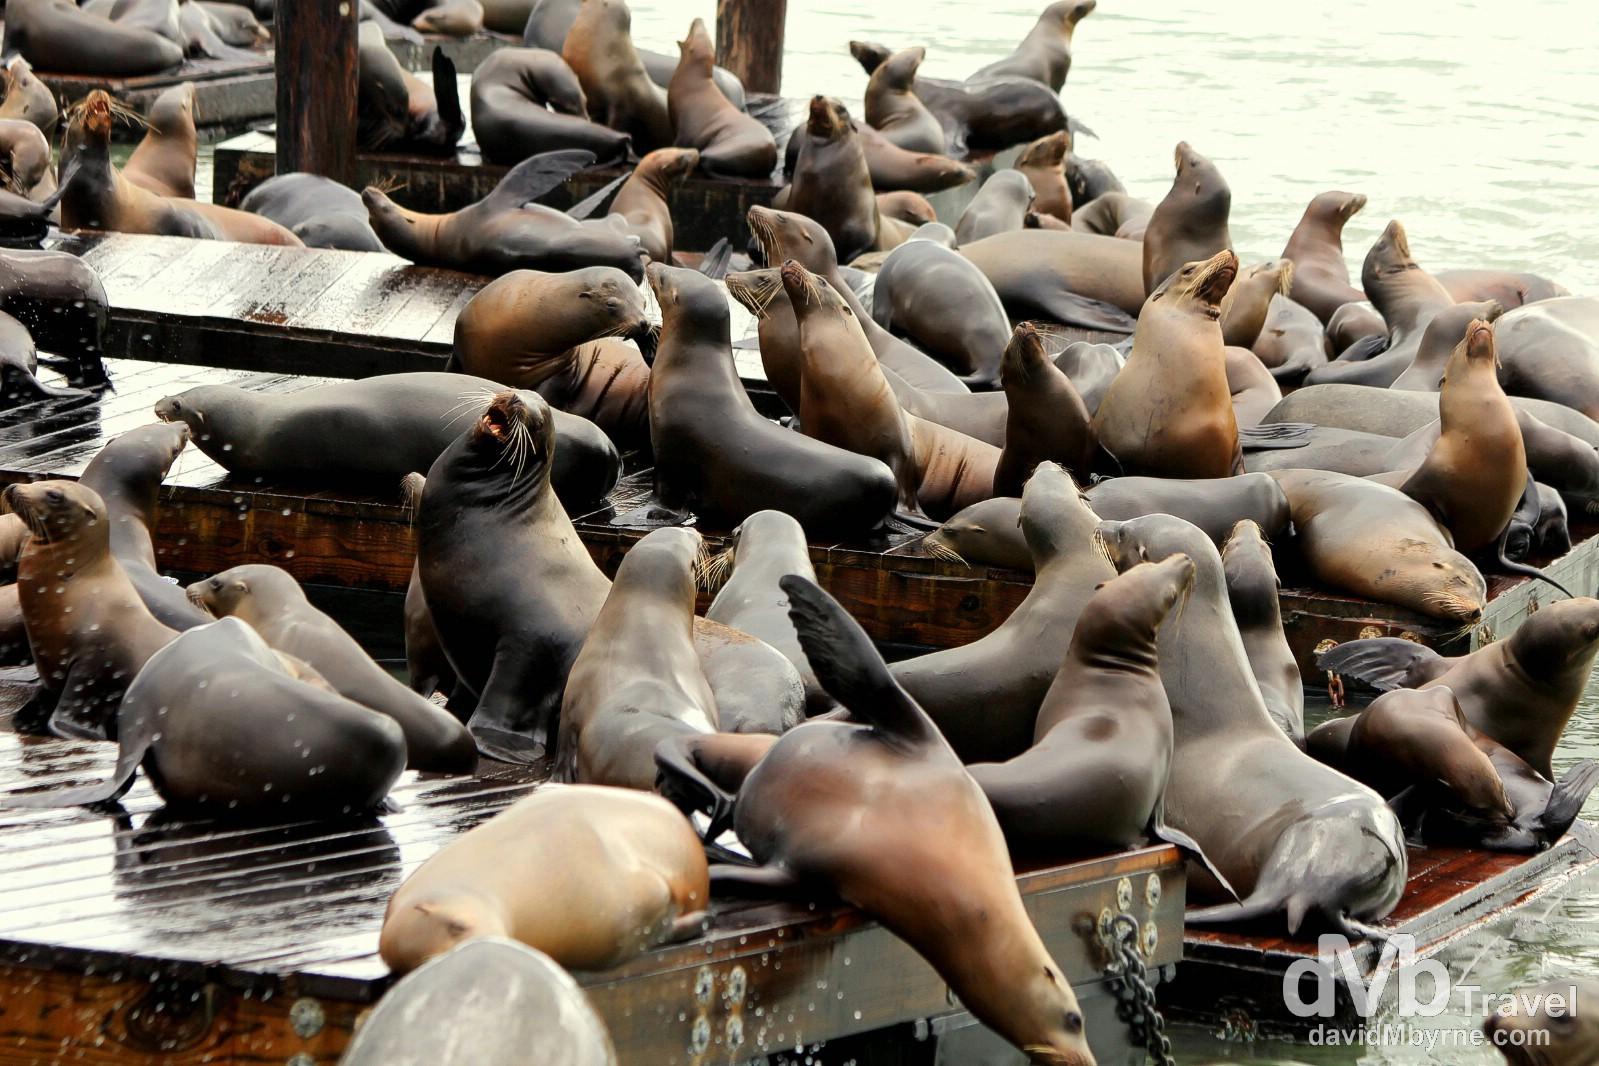 Boisterous Sea lions at Pier 39, San Francisco, California, USA. March 31st 2013.